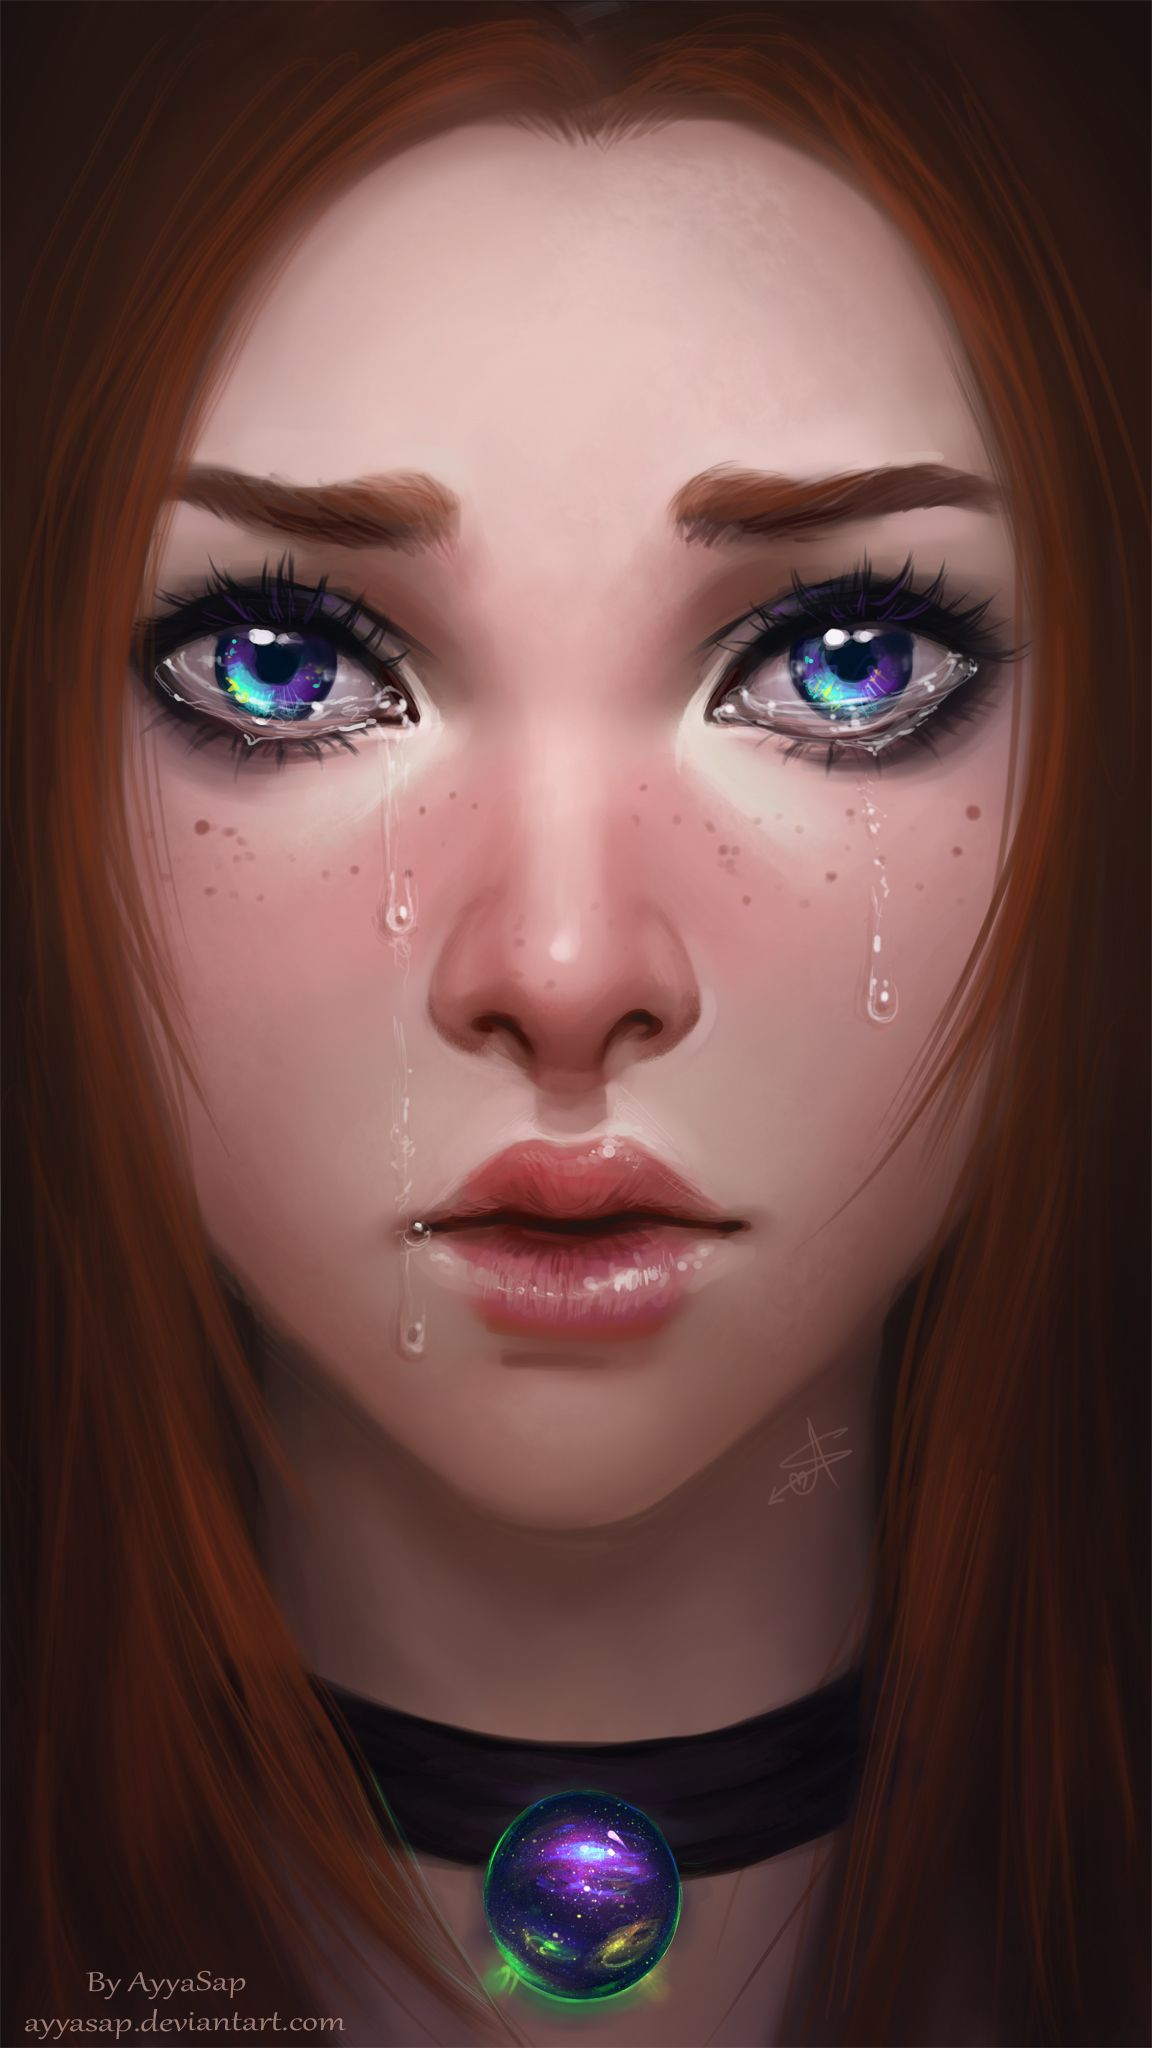 Weeping Eyes By Ayyasap On Deviantart Anime Art Girl Digital Art Girl Girly Art